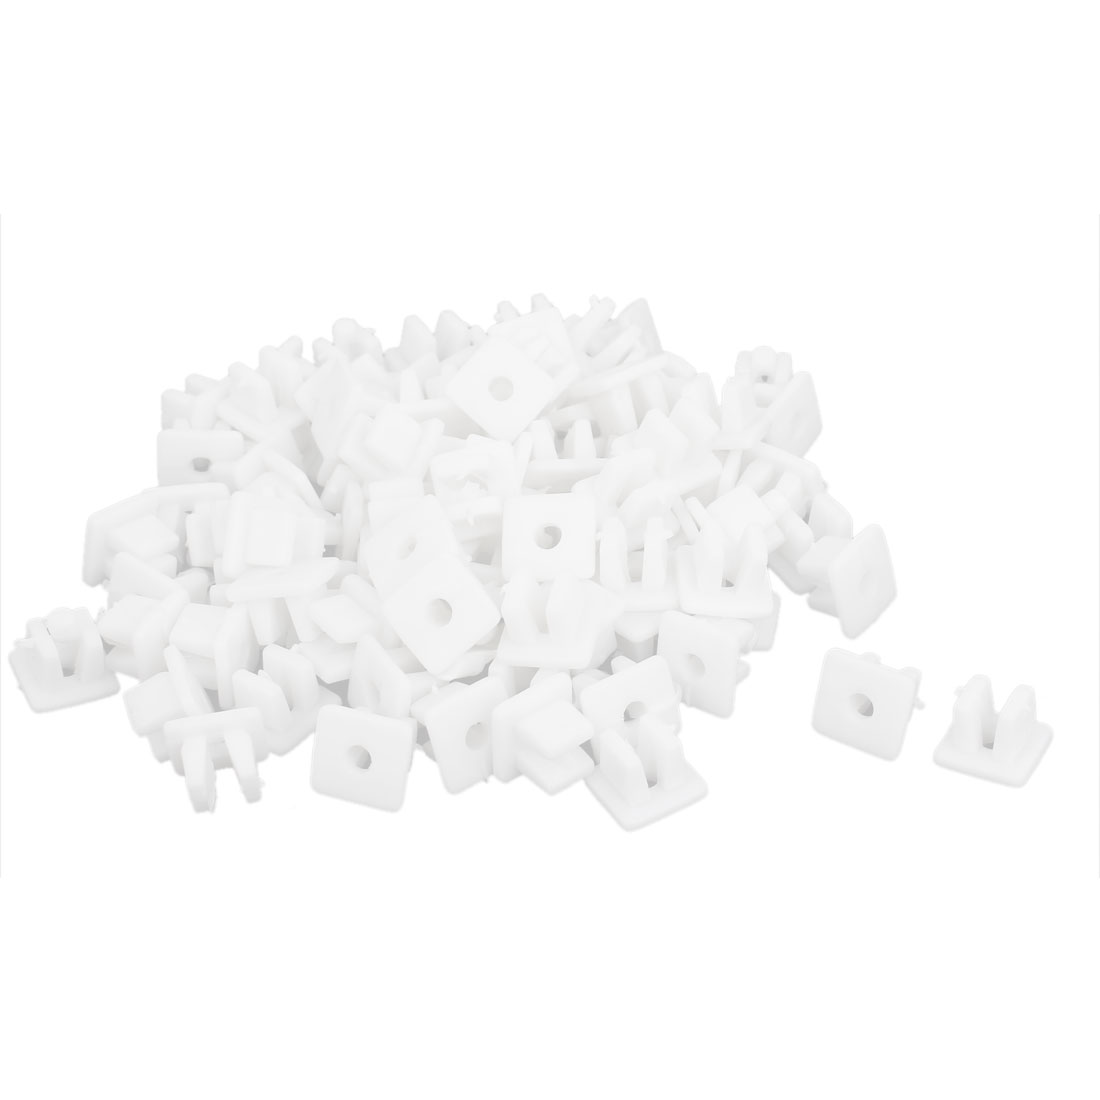 100 Pcs White Plastic Rivet Trim Fastener Moulding Clips 4mm x 7mm x 9mm